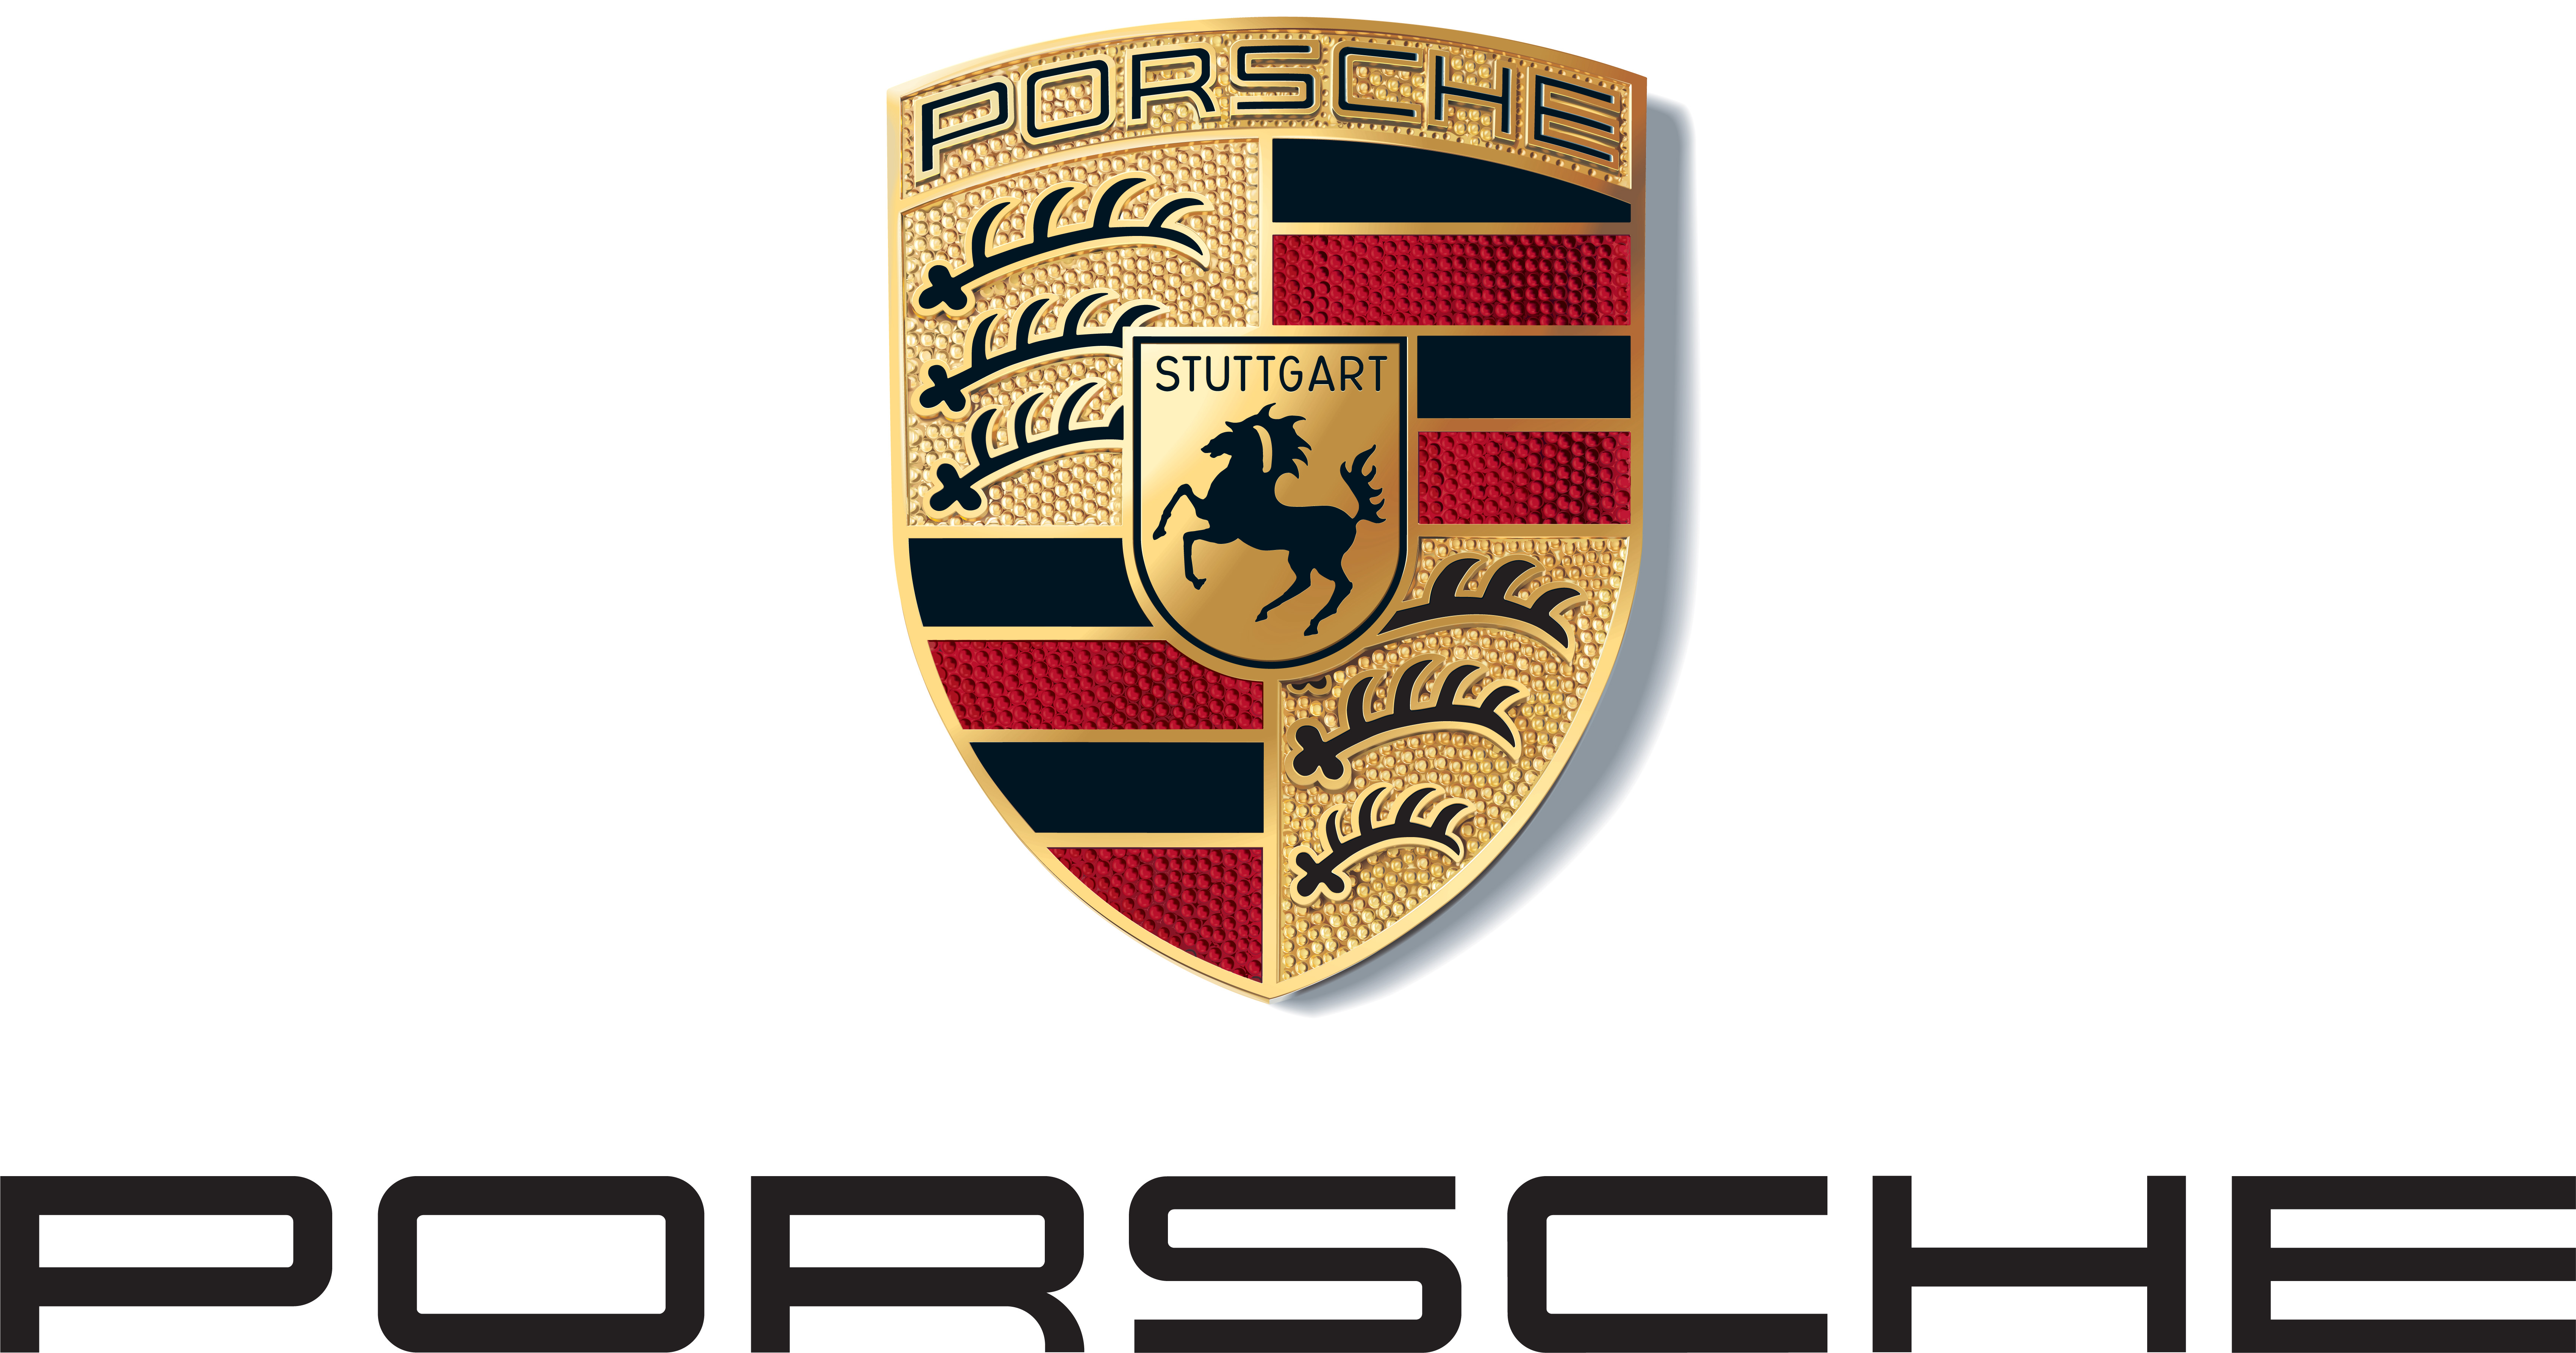 Porsche Logo Pictures Inspirational Pictures